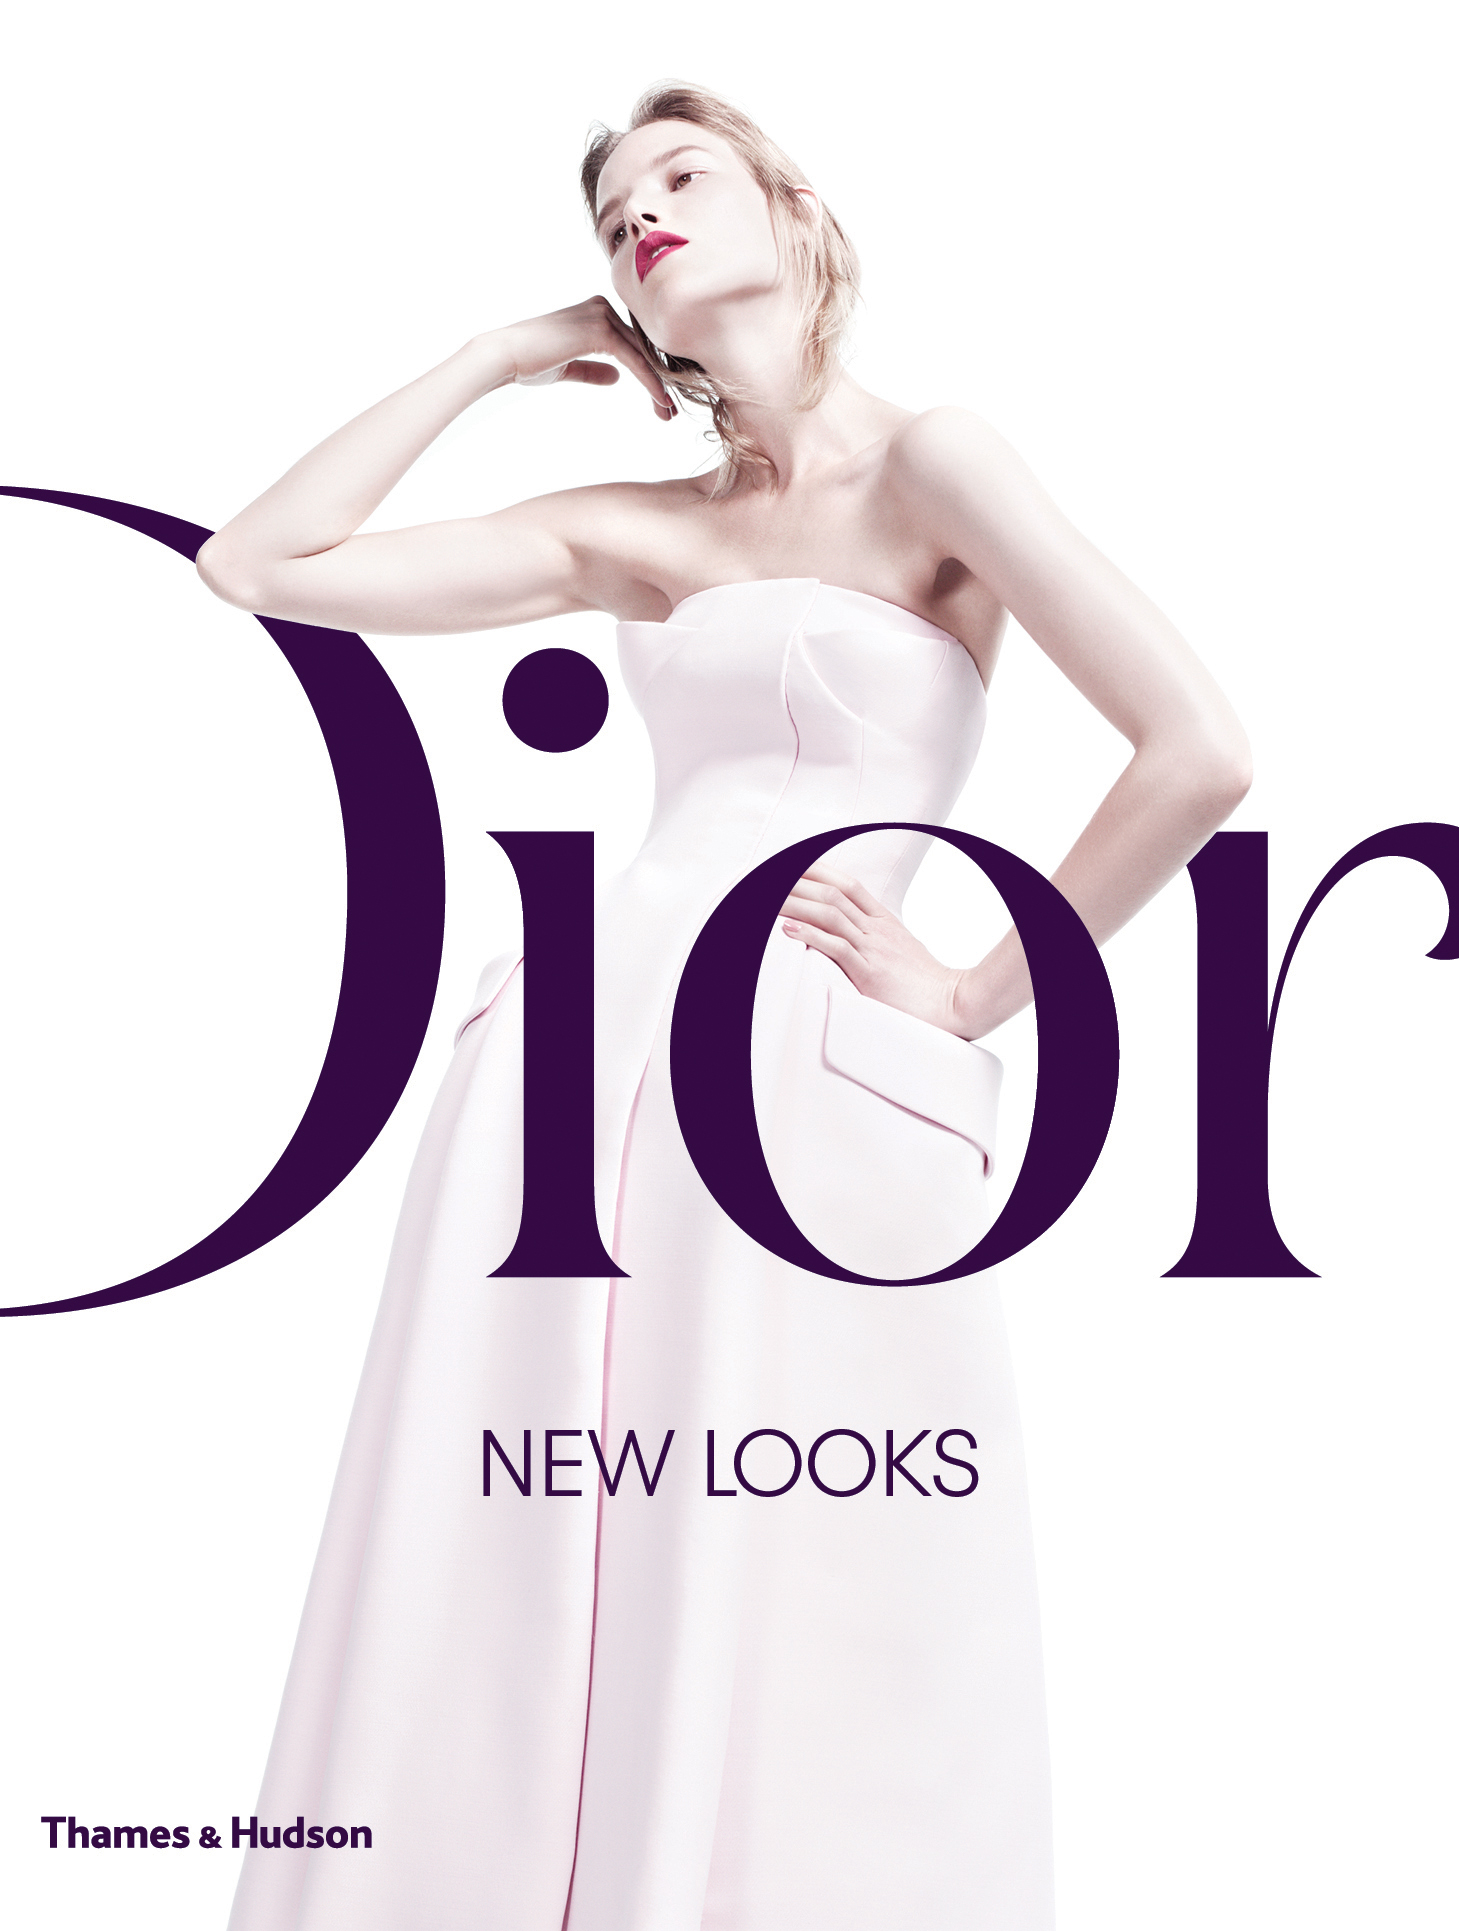 Willy Vanderperre, 2012. Christian Dior Haute Couture by Raf Simons, autumn-winter 2012